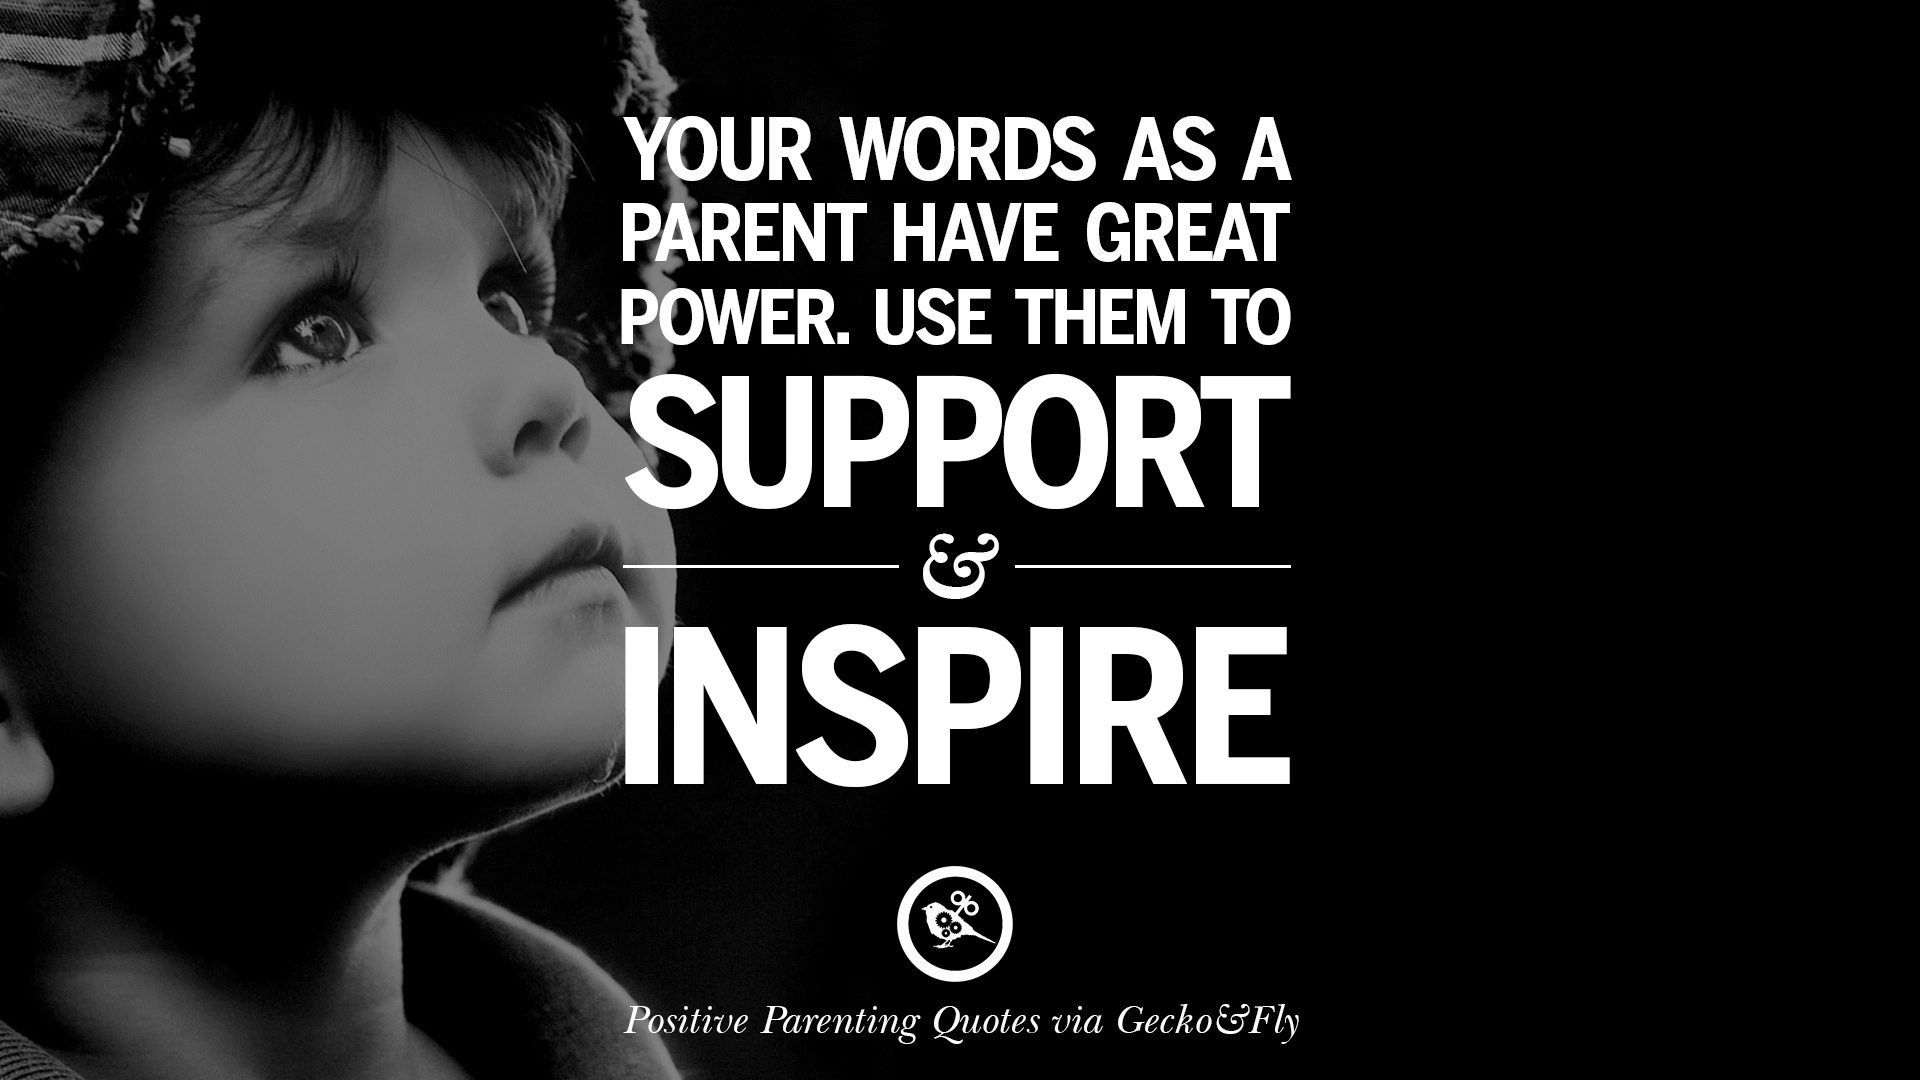 Your Words As A Parent Have Great Power. Use Them To Support And Inspire.